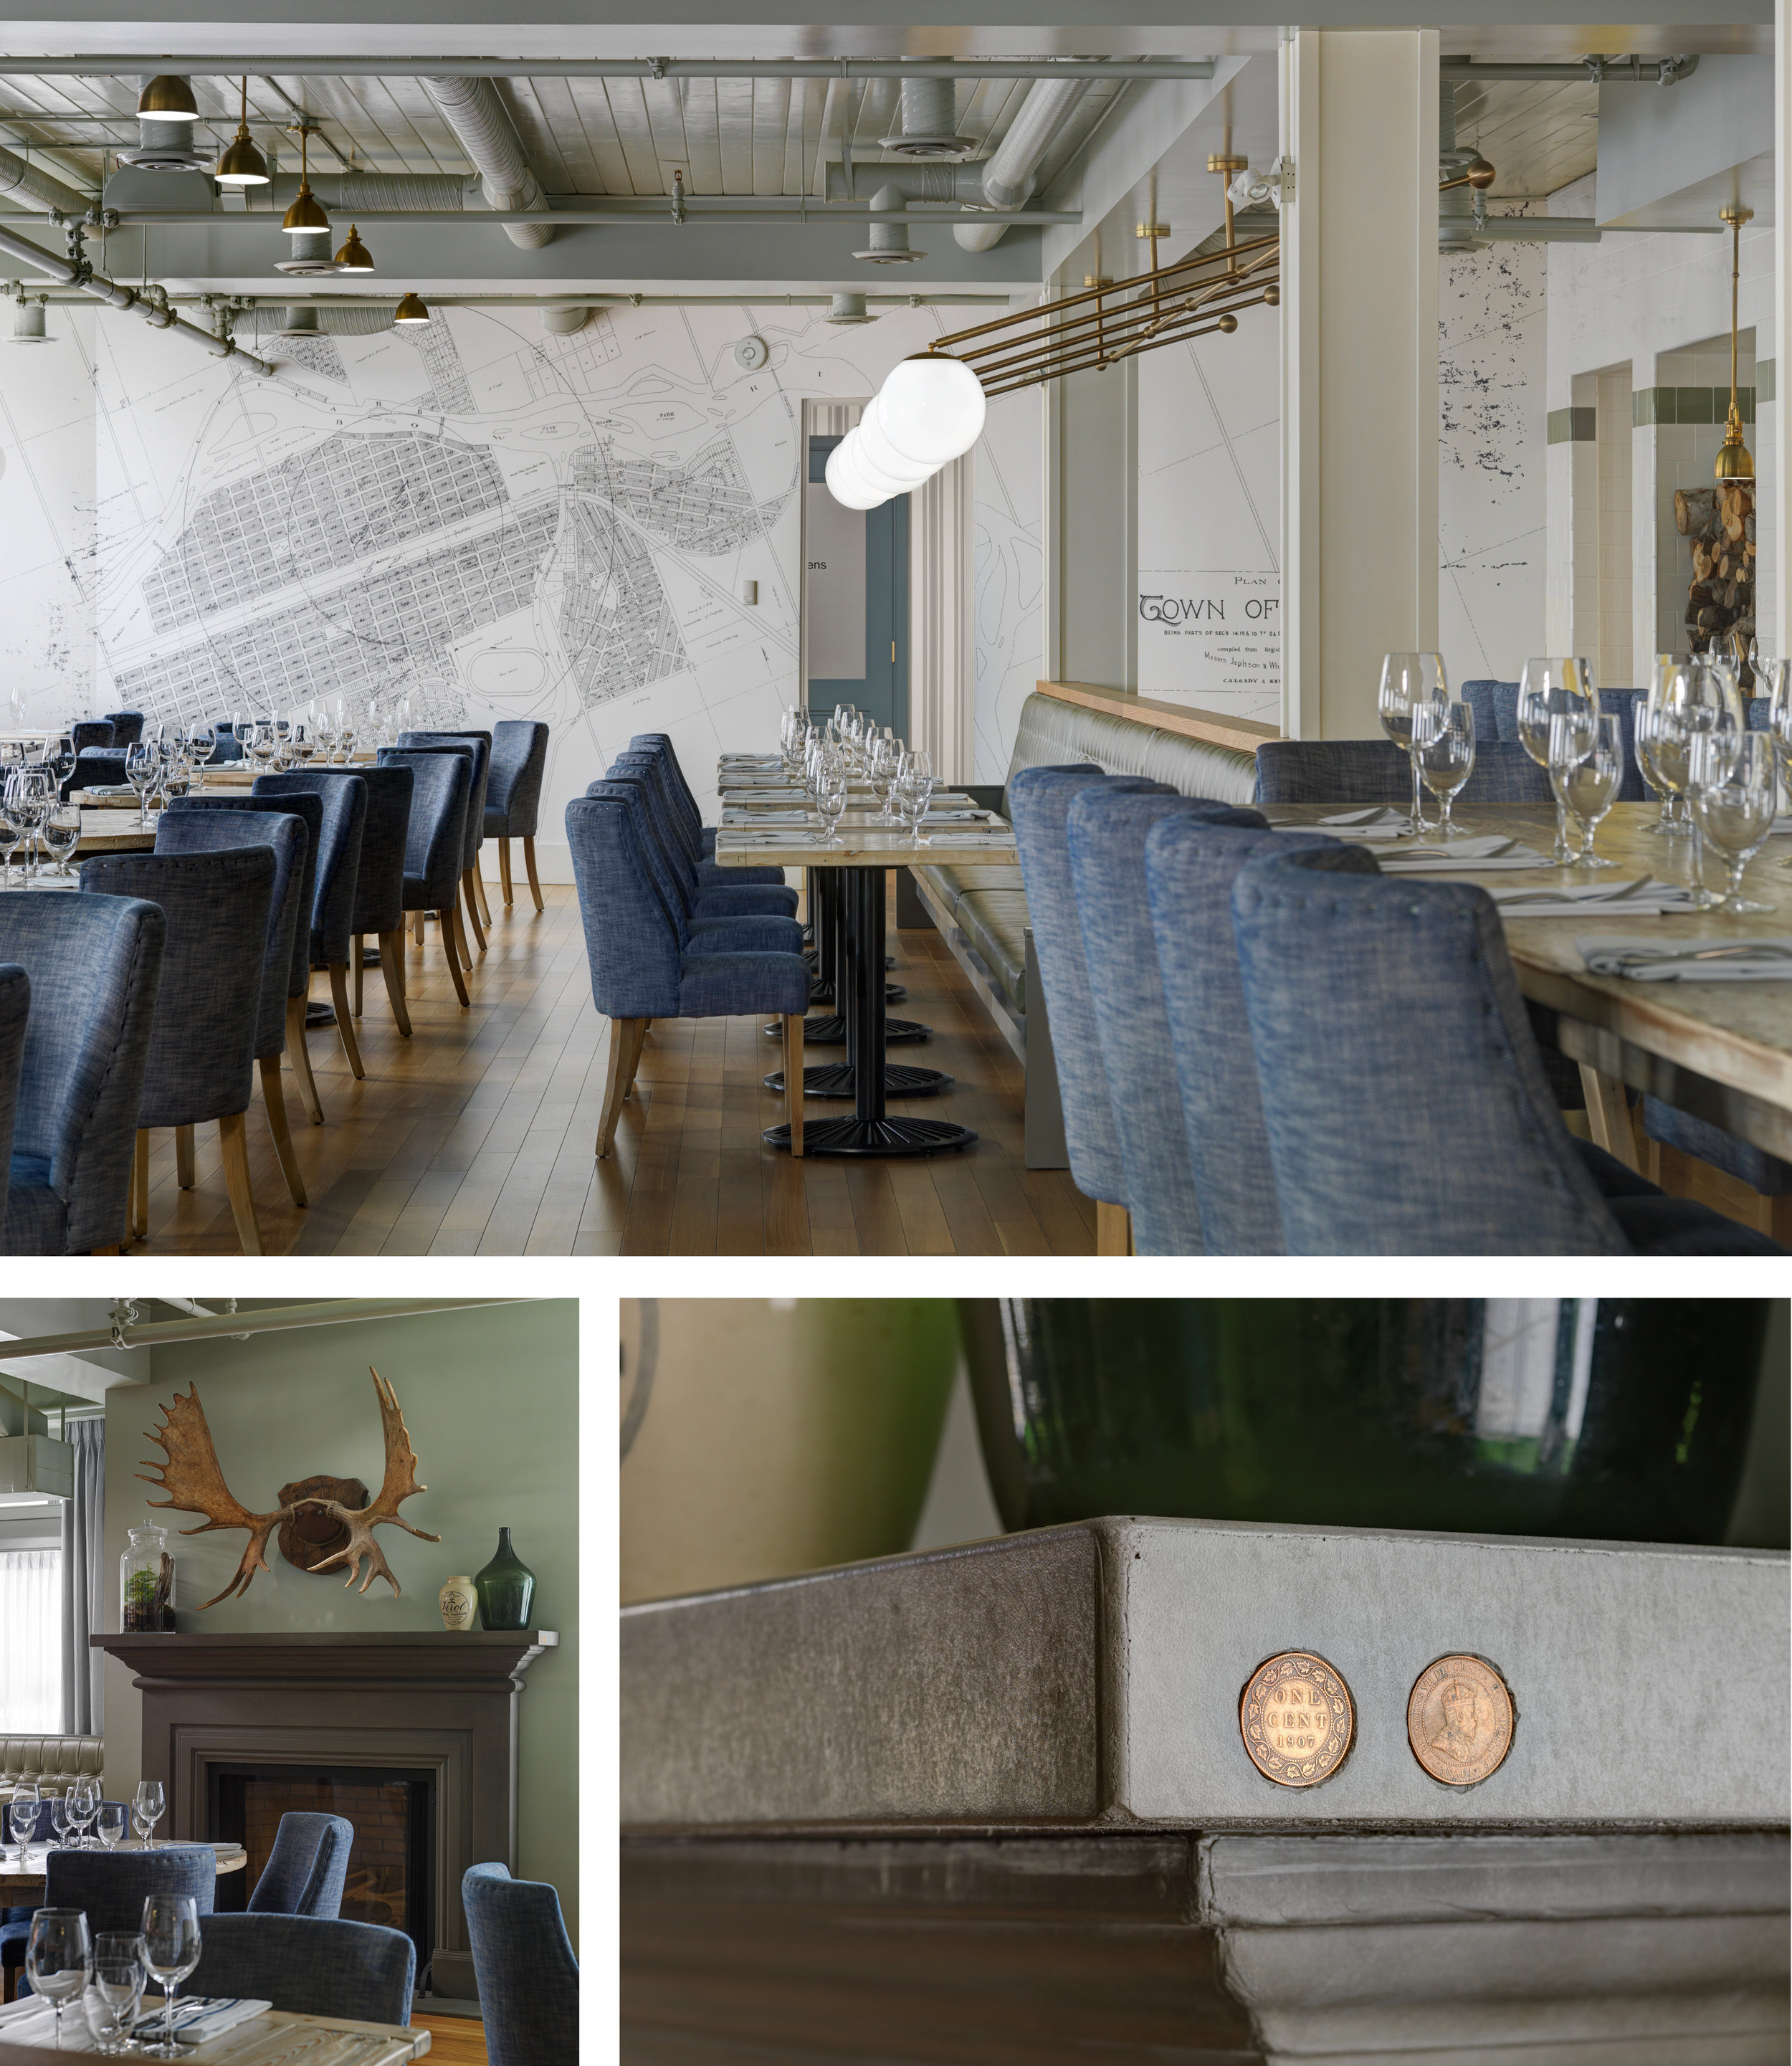 The Nash Restaurant_Sarah Ward Interiors_Calgary Interior Design_1.jpg